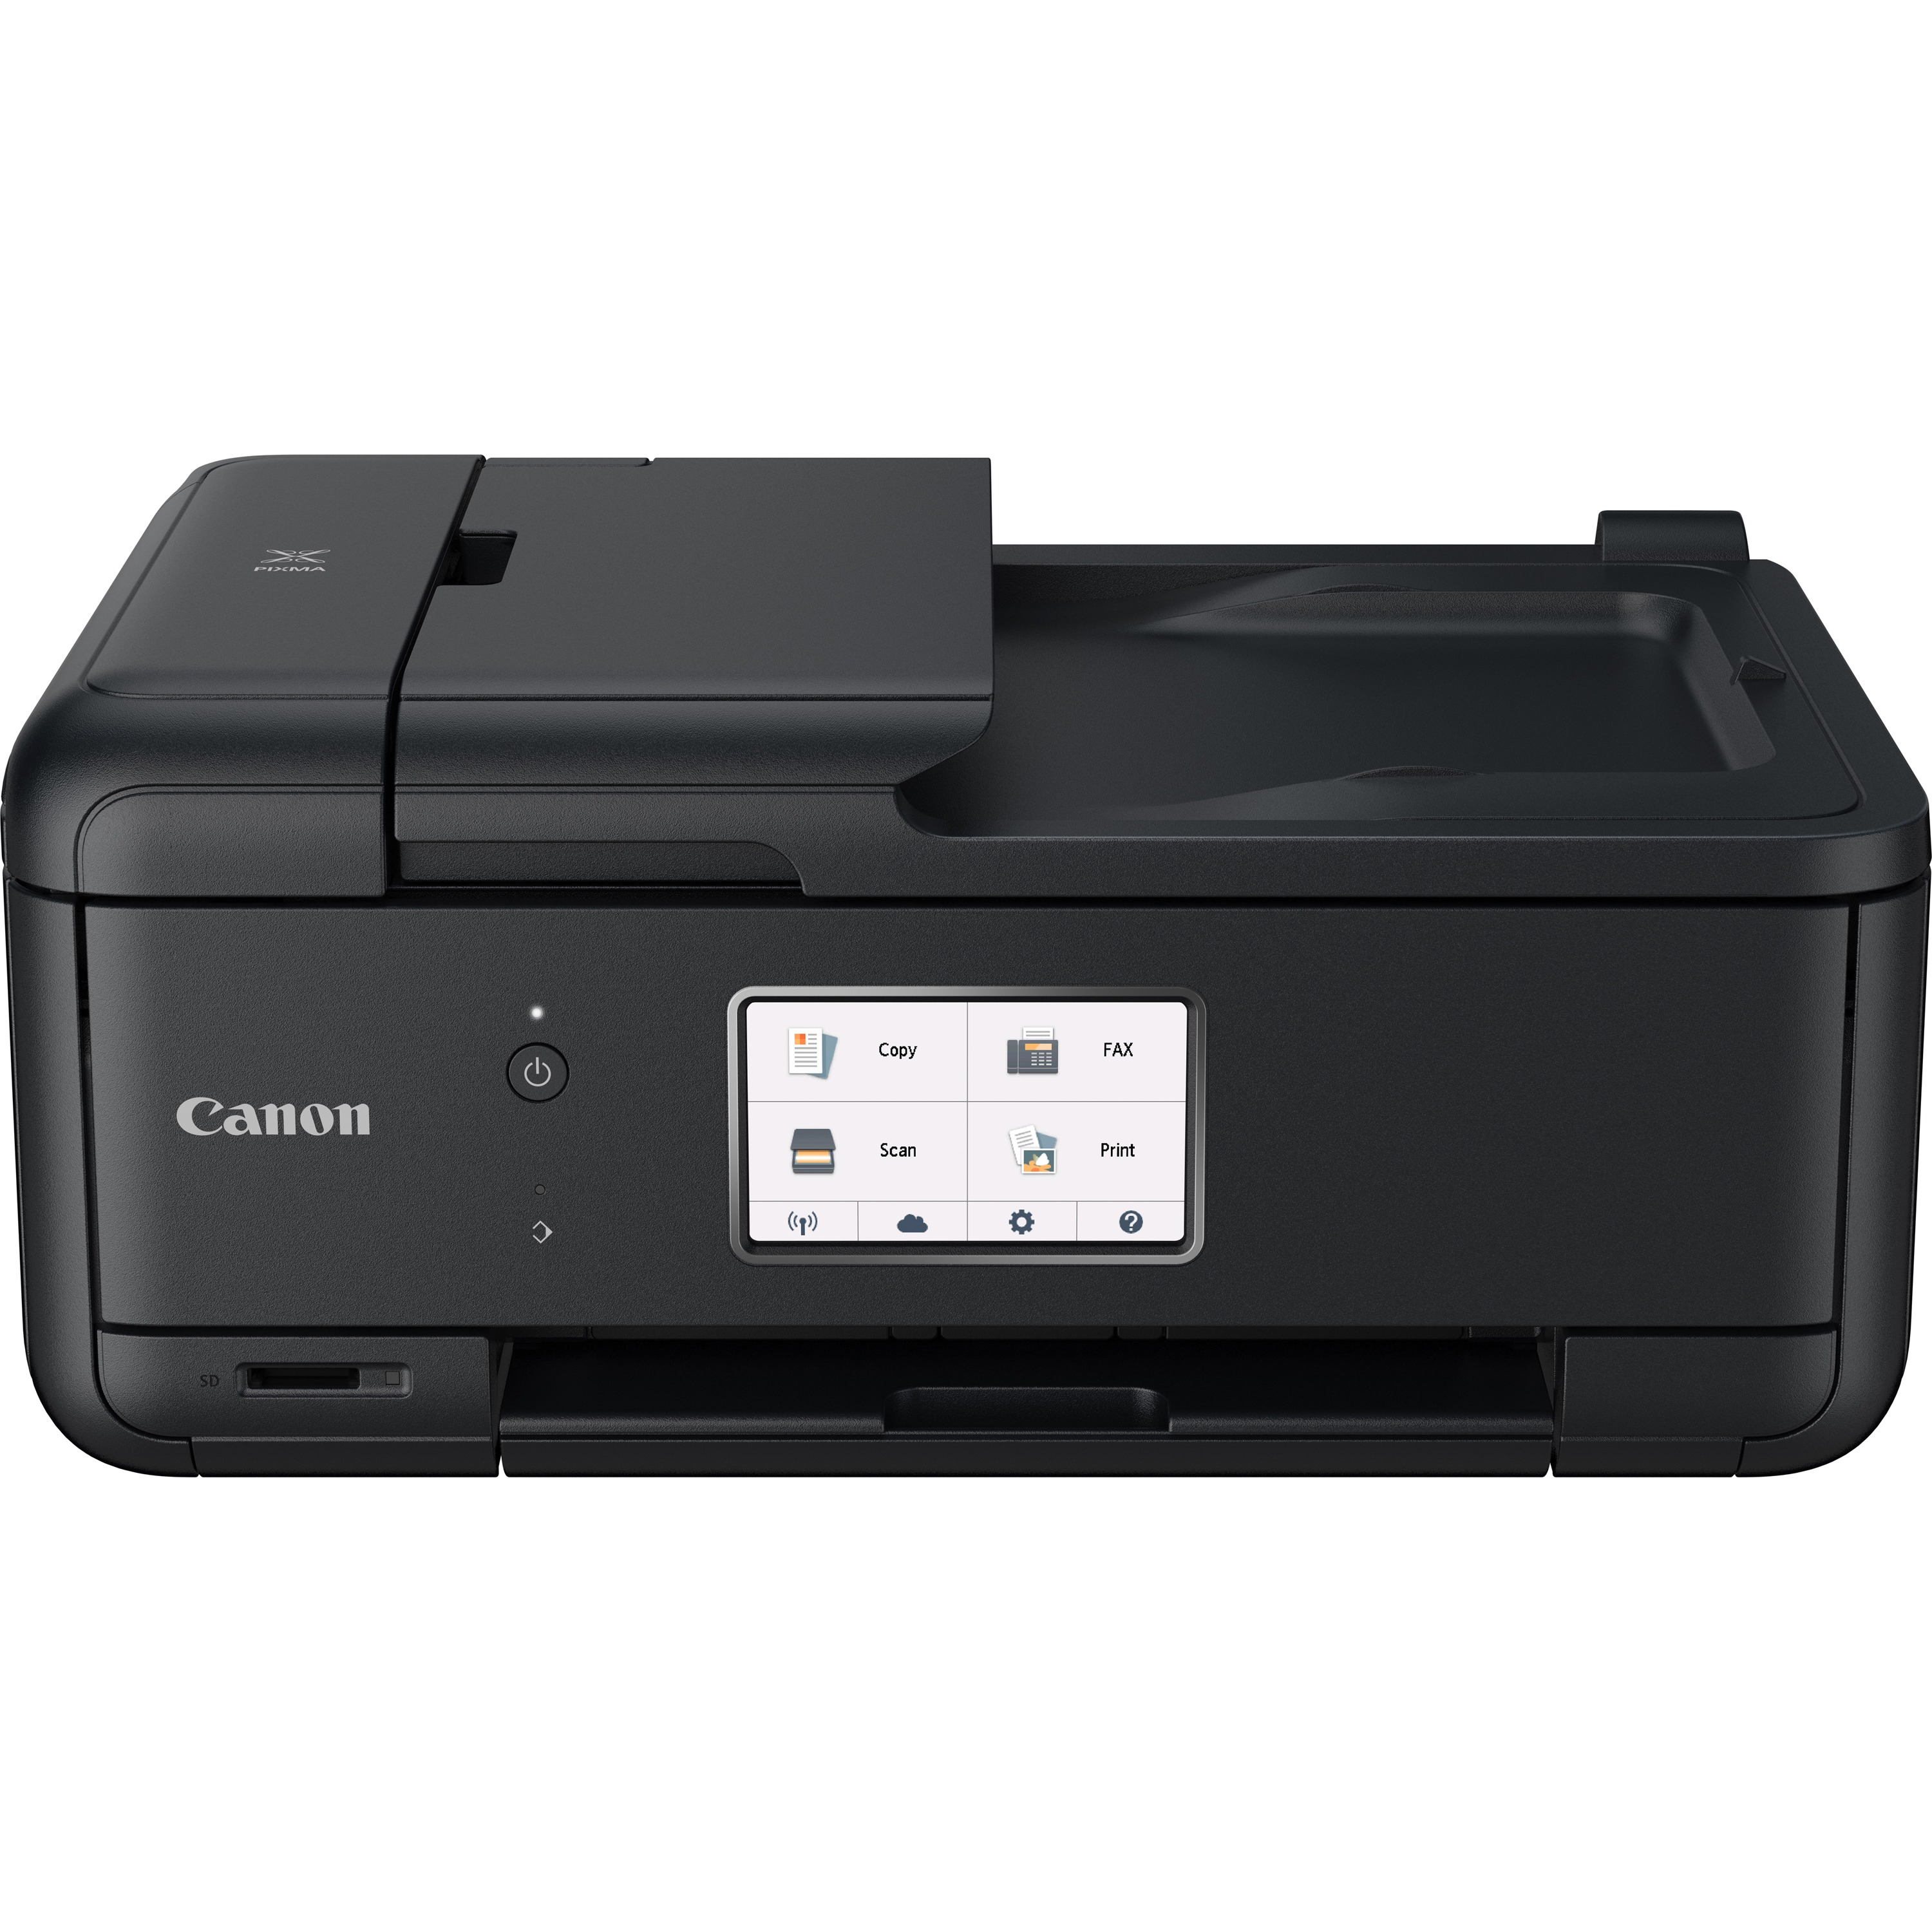 Canon PIXMA TR8520 Wireless Home Office All-In-One Printer with Scanner, Copier and Fax